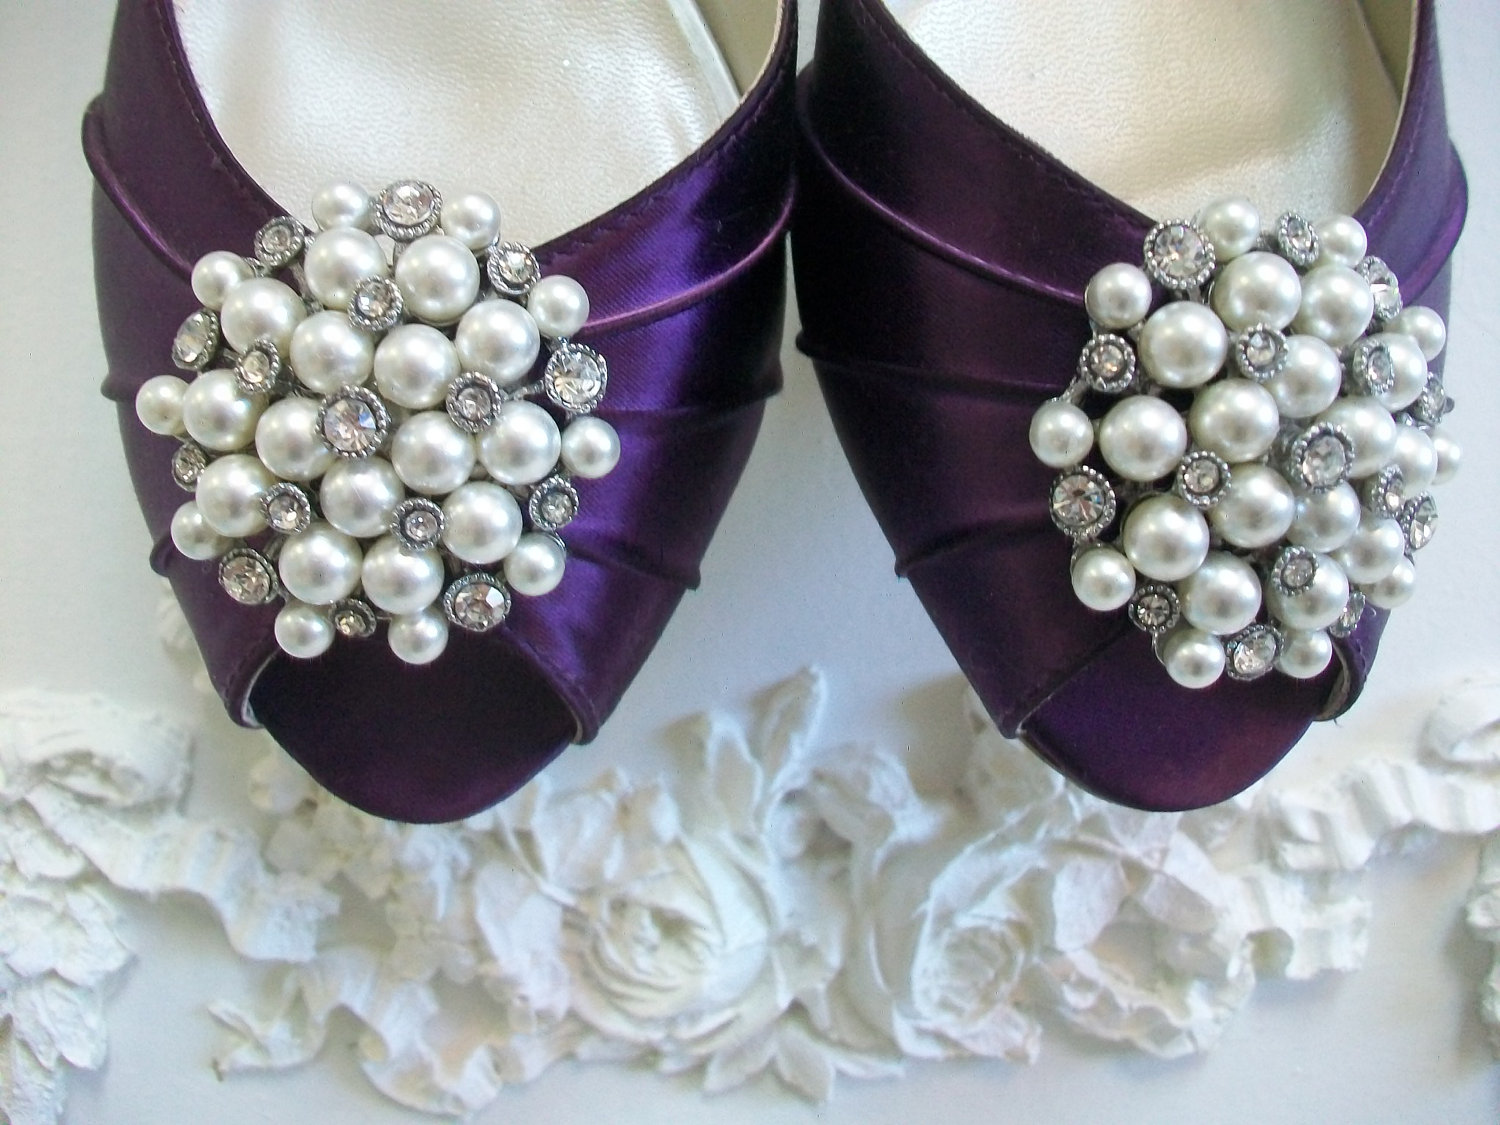 Pearl wedding accessories handmade etsy wedding finds shoe for Wedding supplies